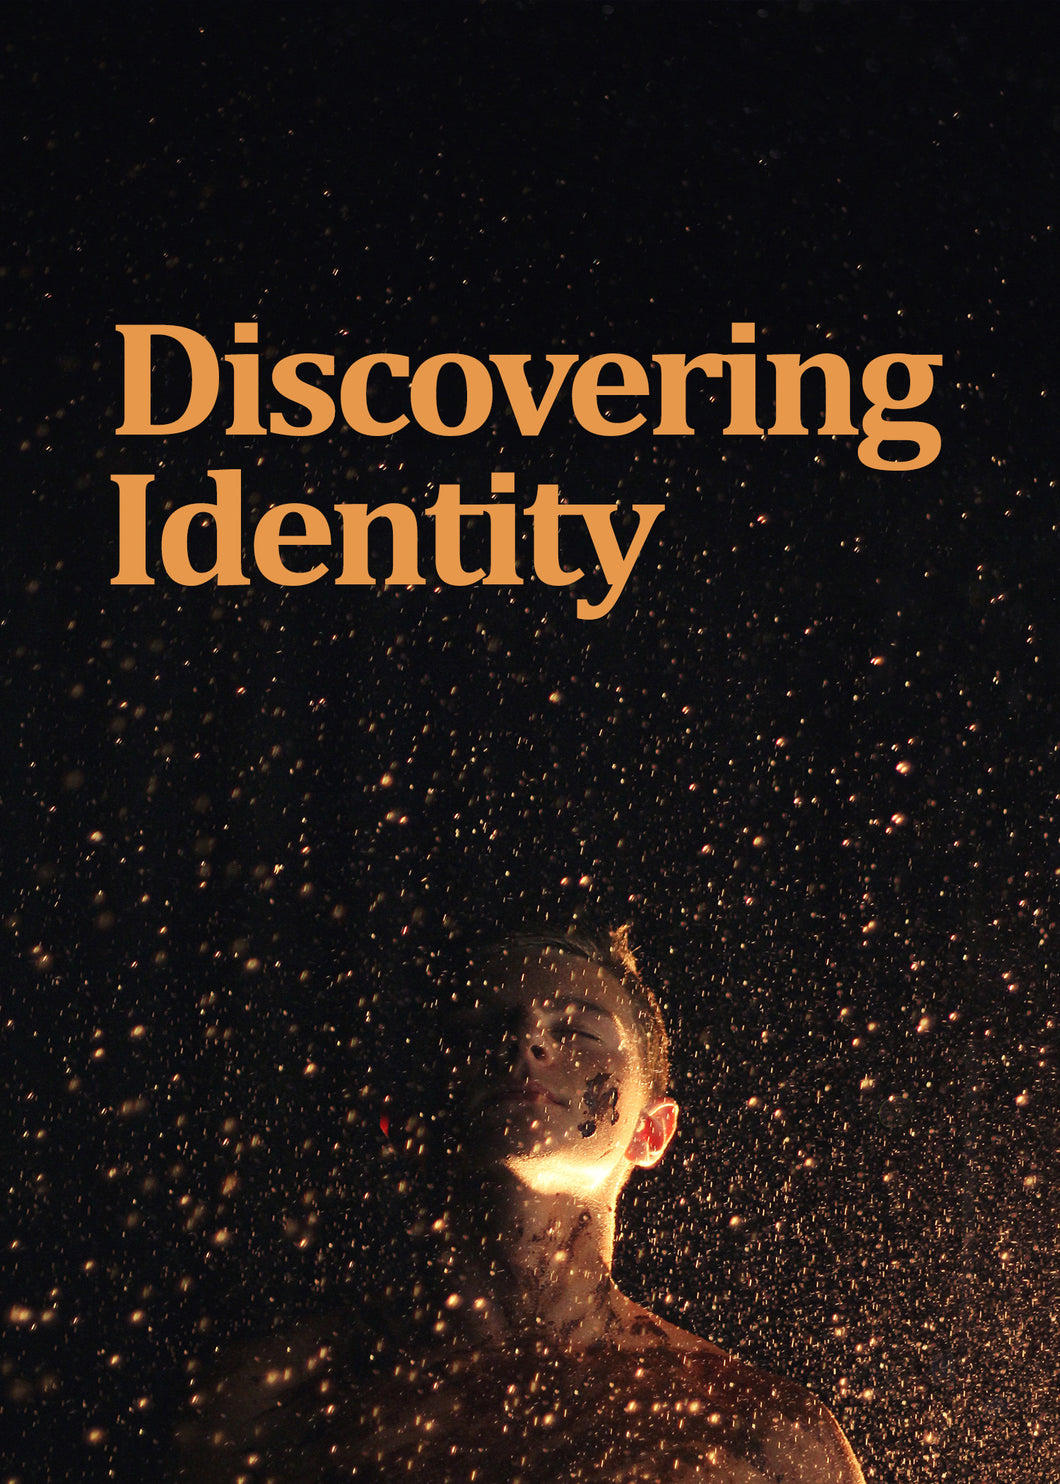 Discovering Identity (Two-Part Audio Series) - J.D. King